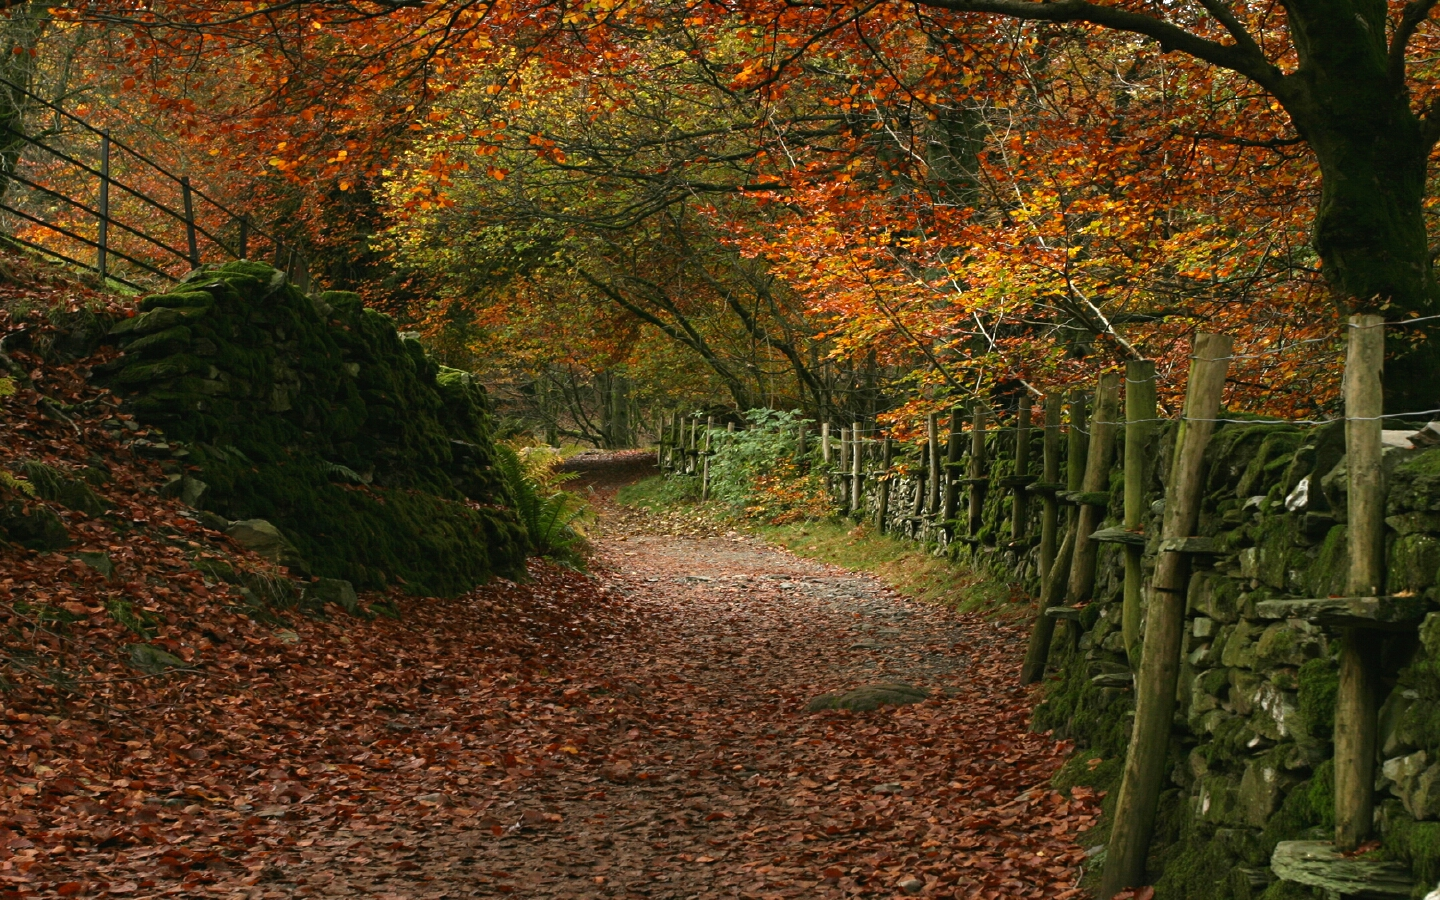 Autumn is here again | Dave's Pics